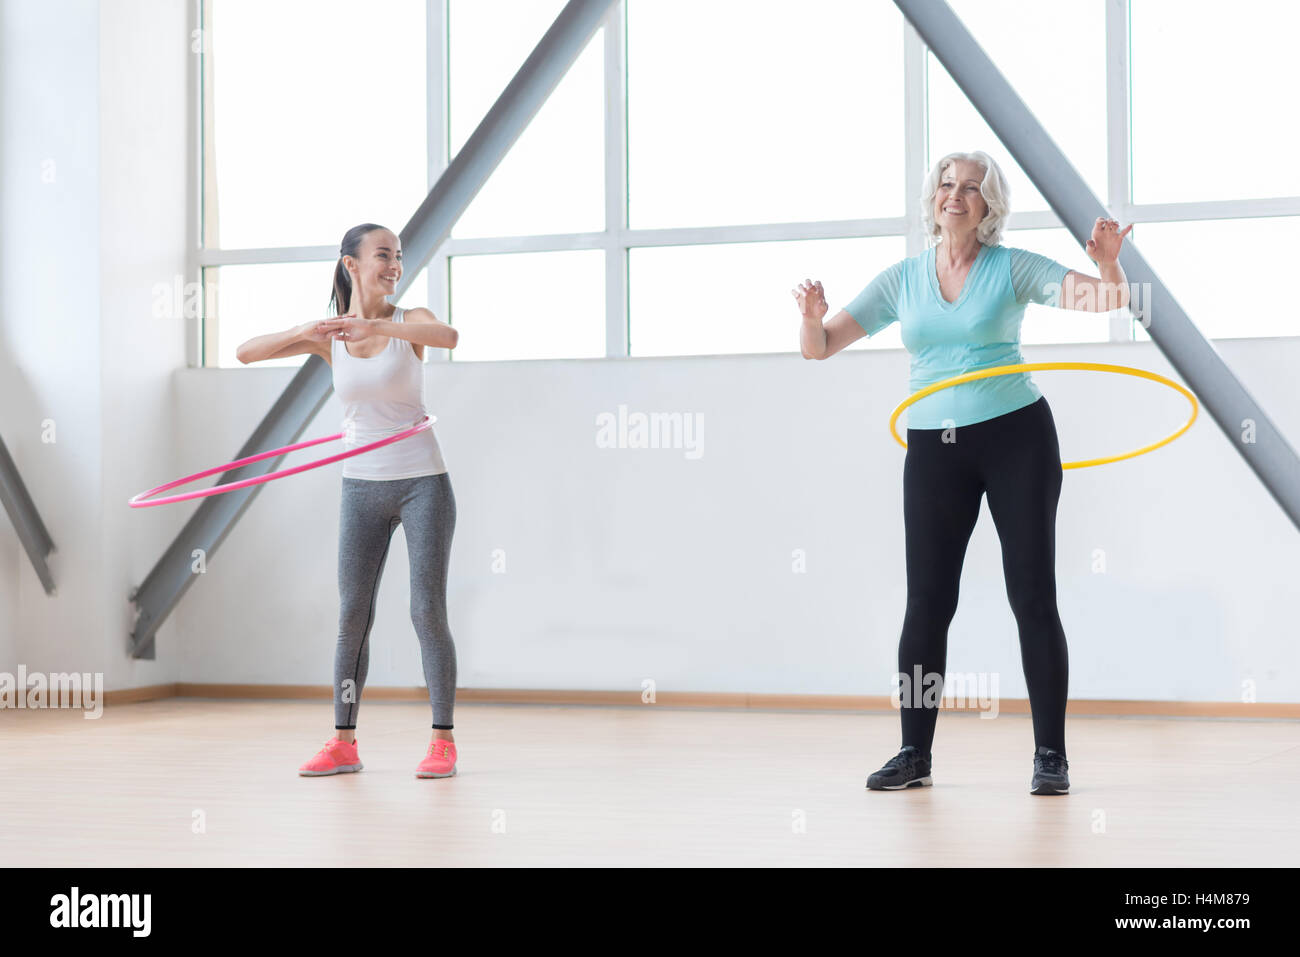 Sporty active women rotating hula hoops - Stock Image